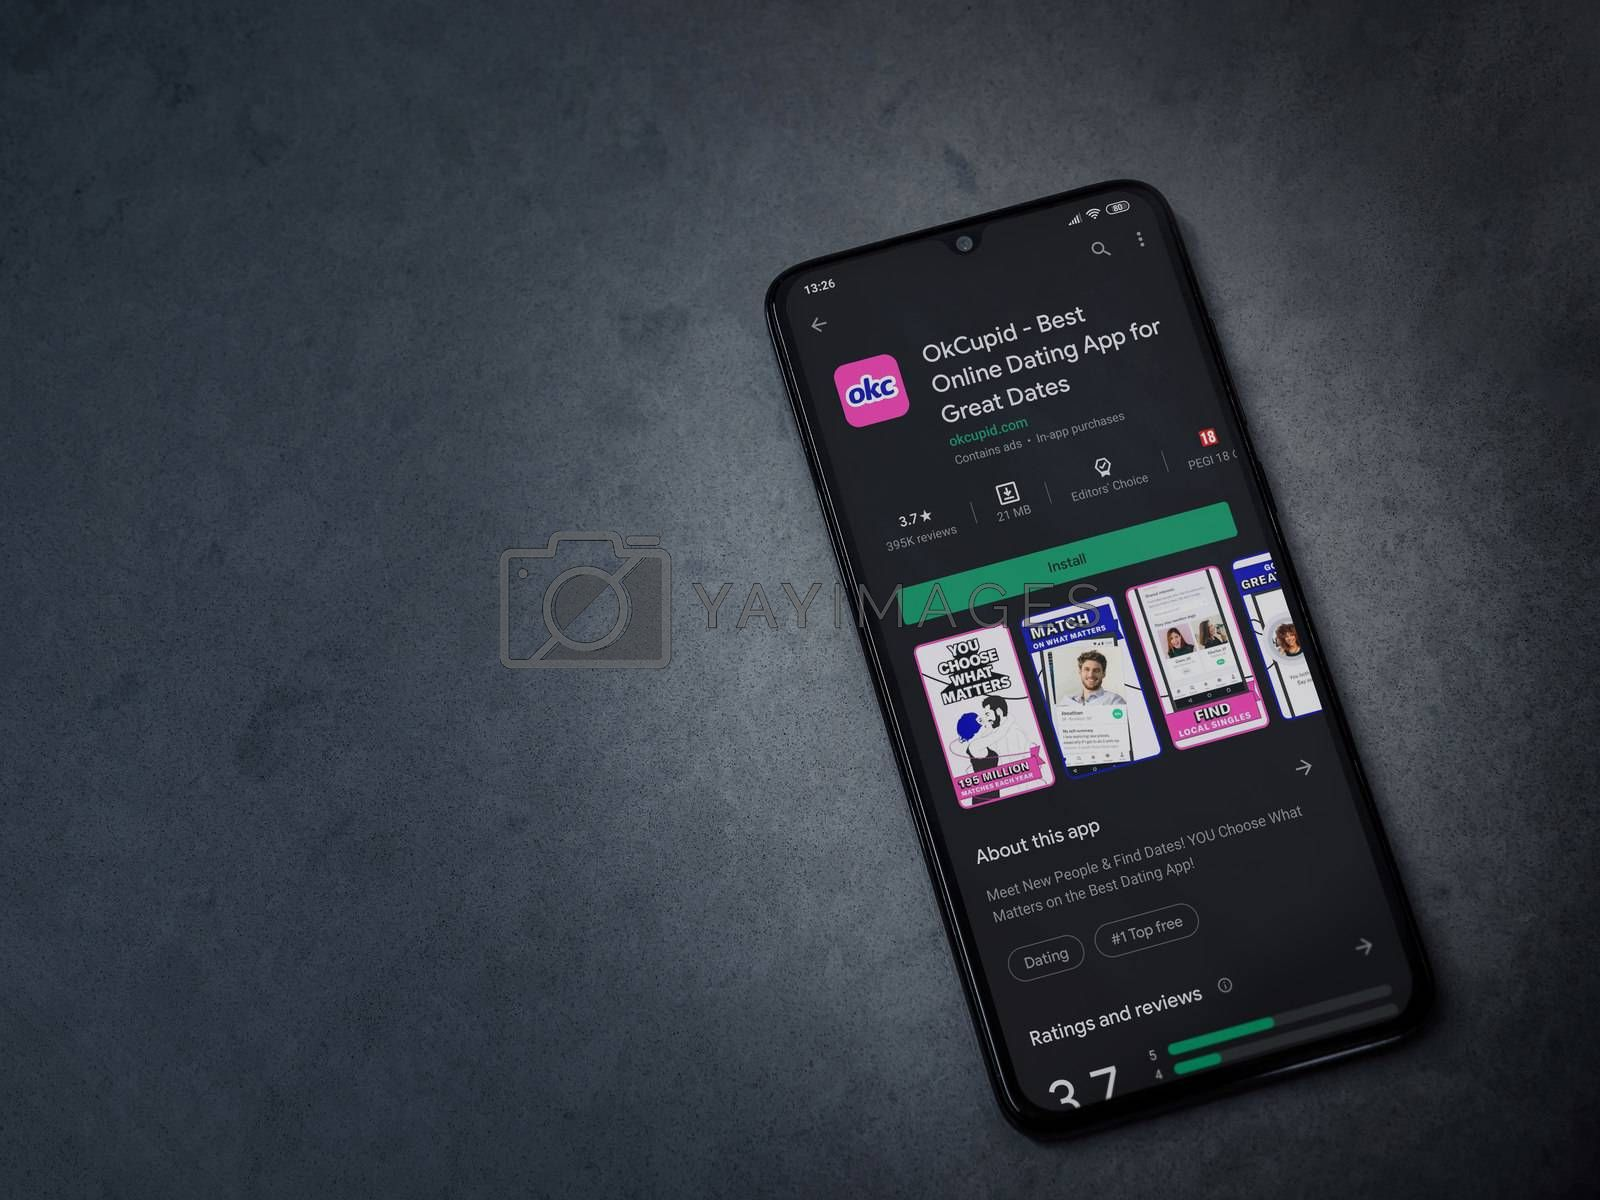 Lod, Israel - July 8, 2020: OkCupid app play store page on the display of a black mobile smartphone on dark marble stone background. Top view flat lay with copy space.